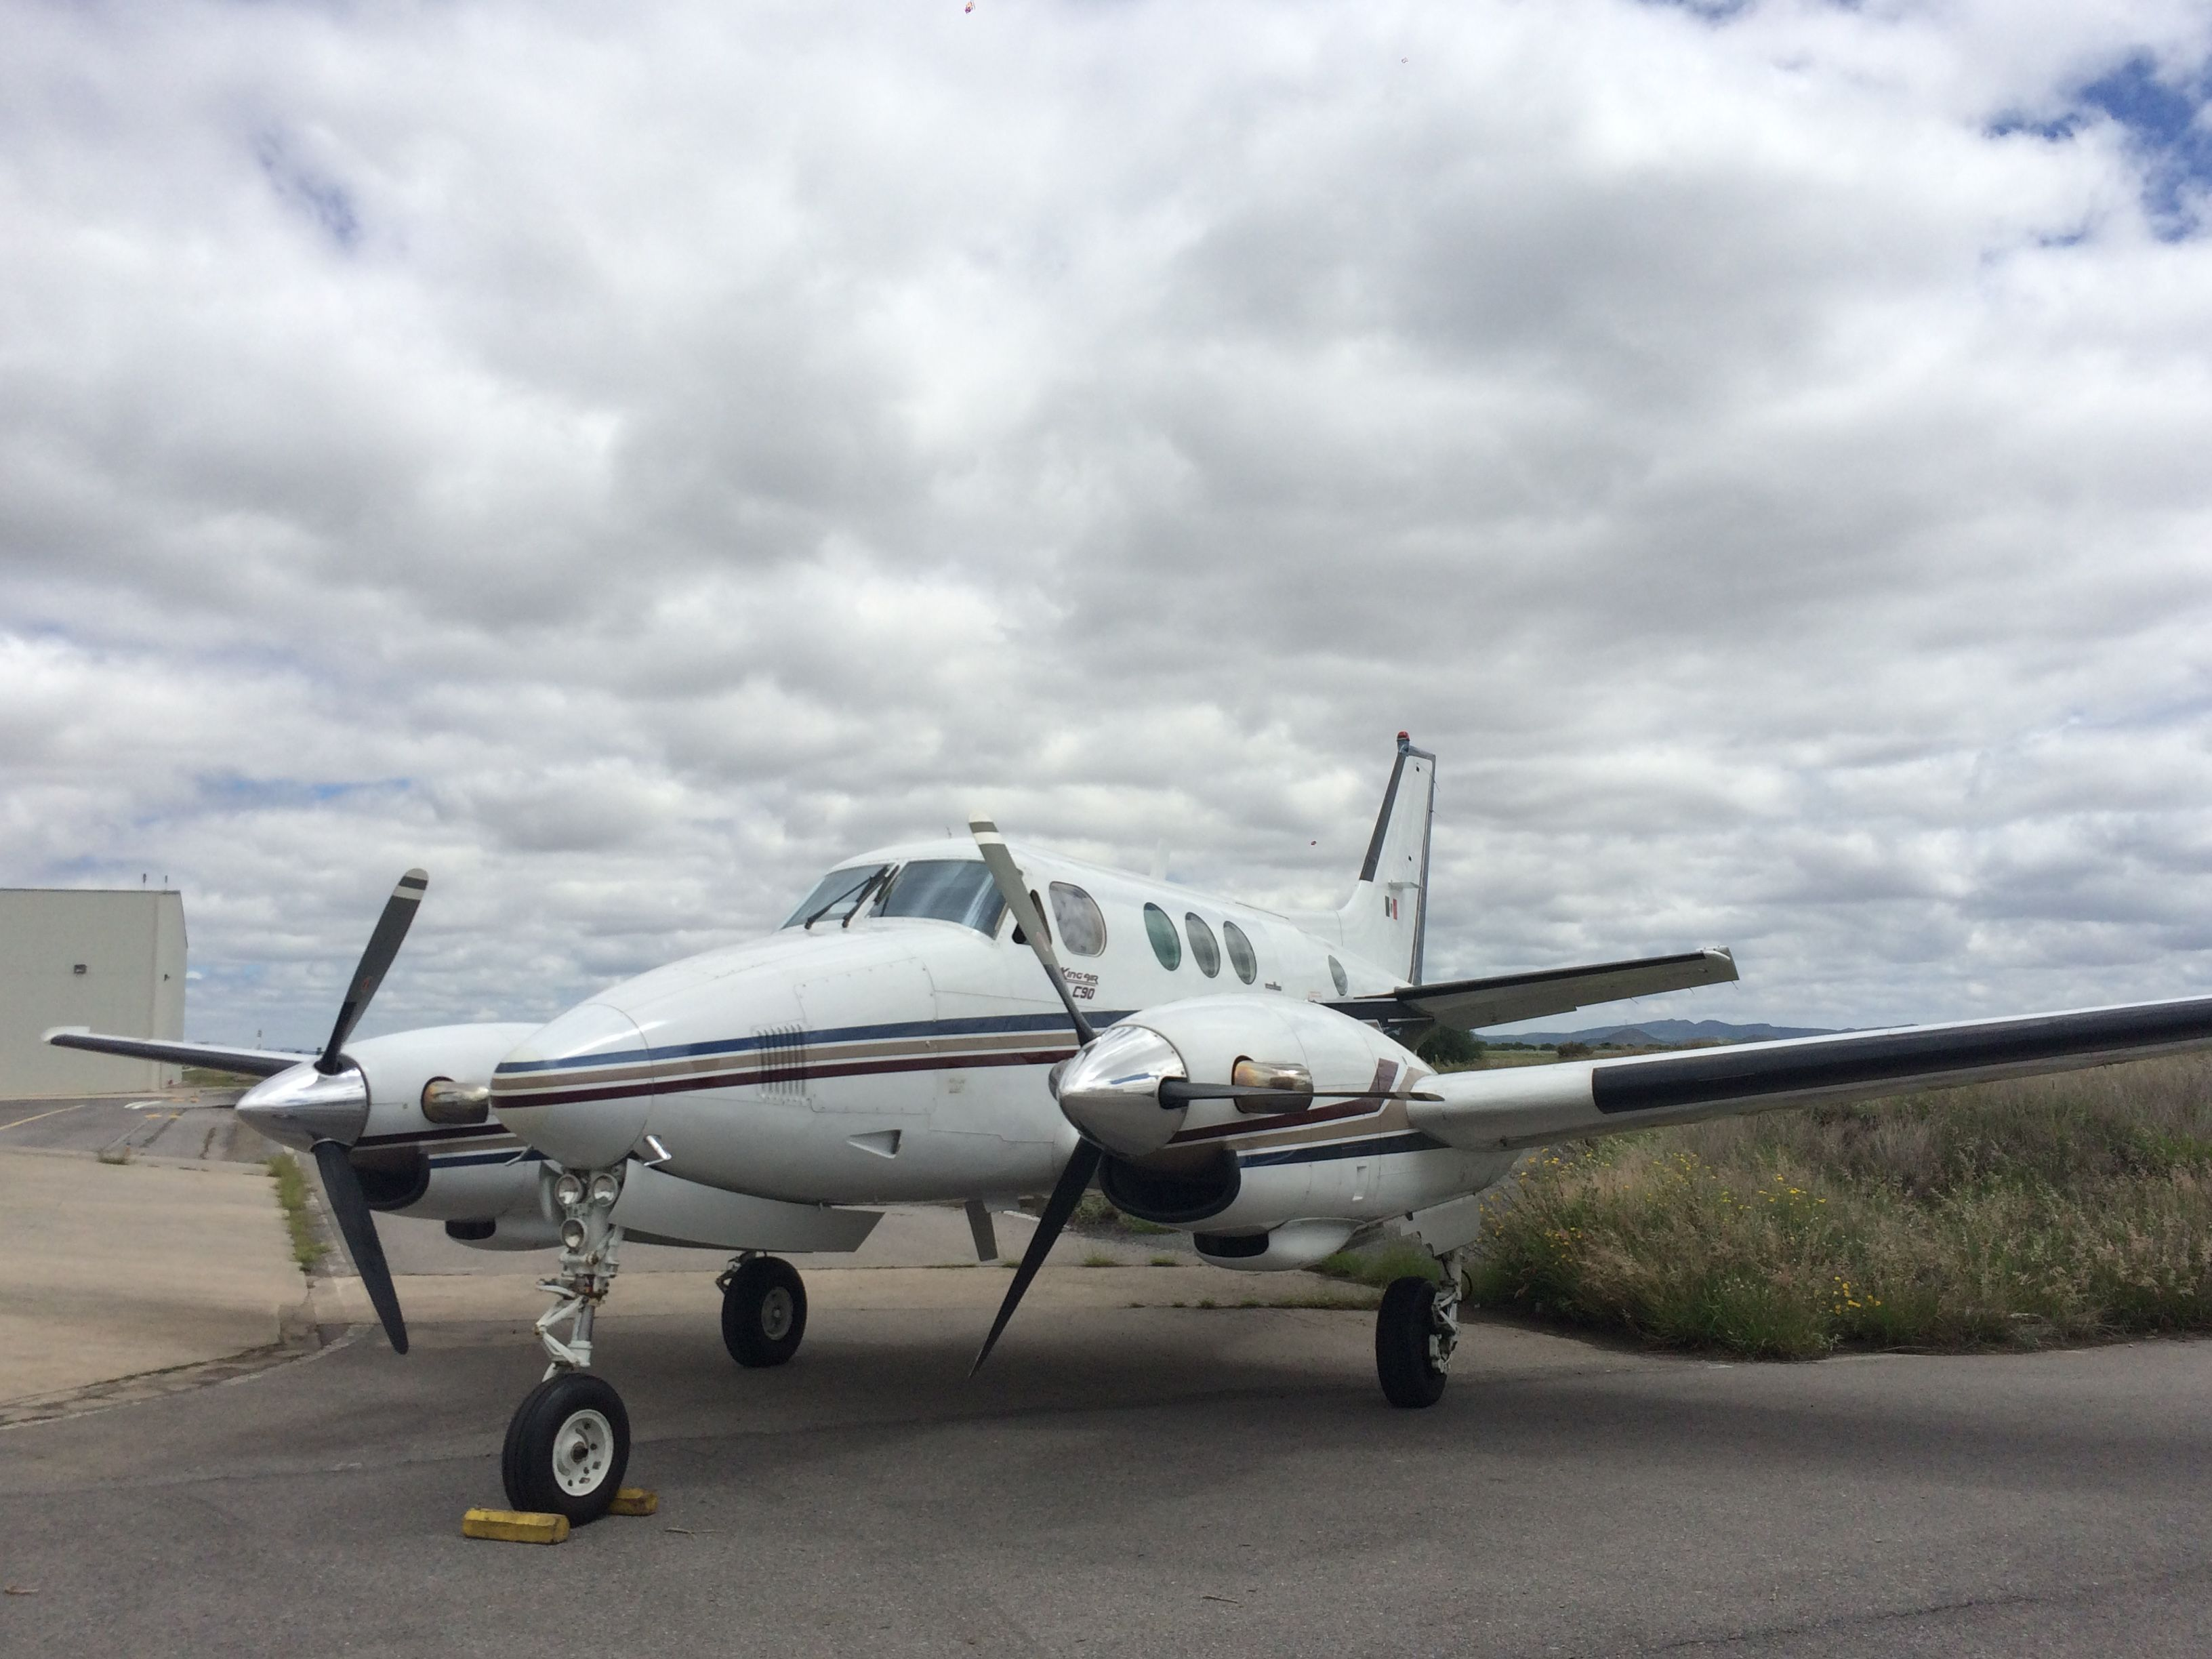 King Air E90 for sale Fighter jets, Aircraft, Air